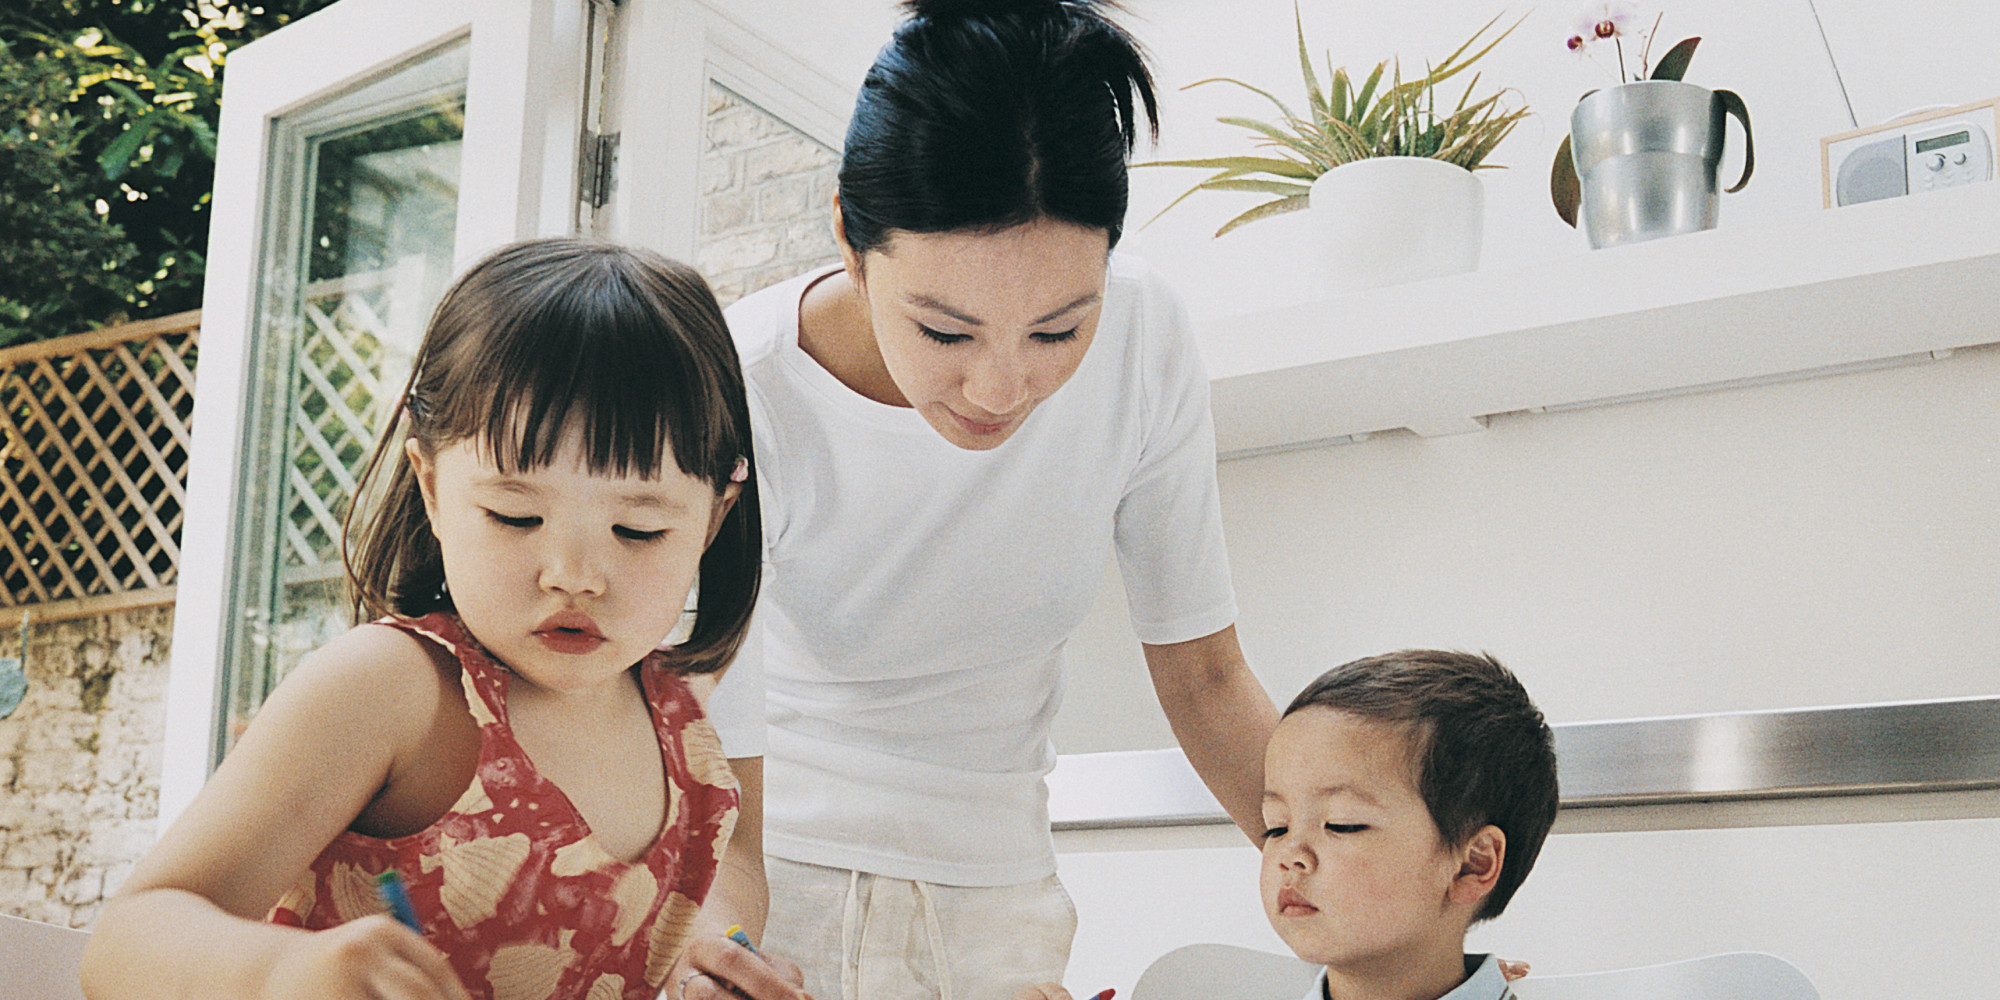 raising children as a single divorced mom Facts about single parenting this is a new age of parenting the statistics reveal the rates of divorce are skyrocketing there are singles who would want to shoulder the responsibility of adopting a child or a couple of children, all by themselves.